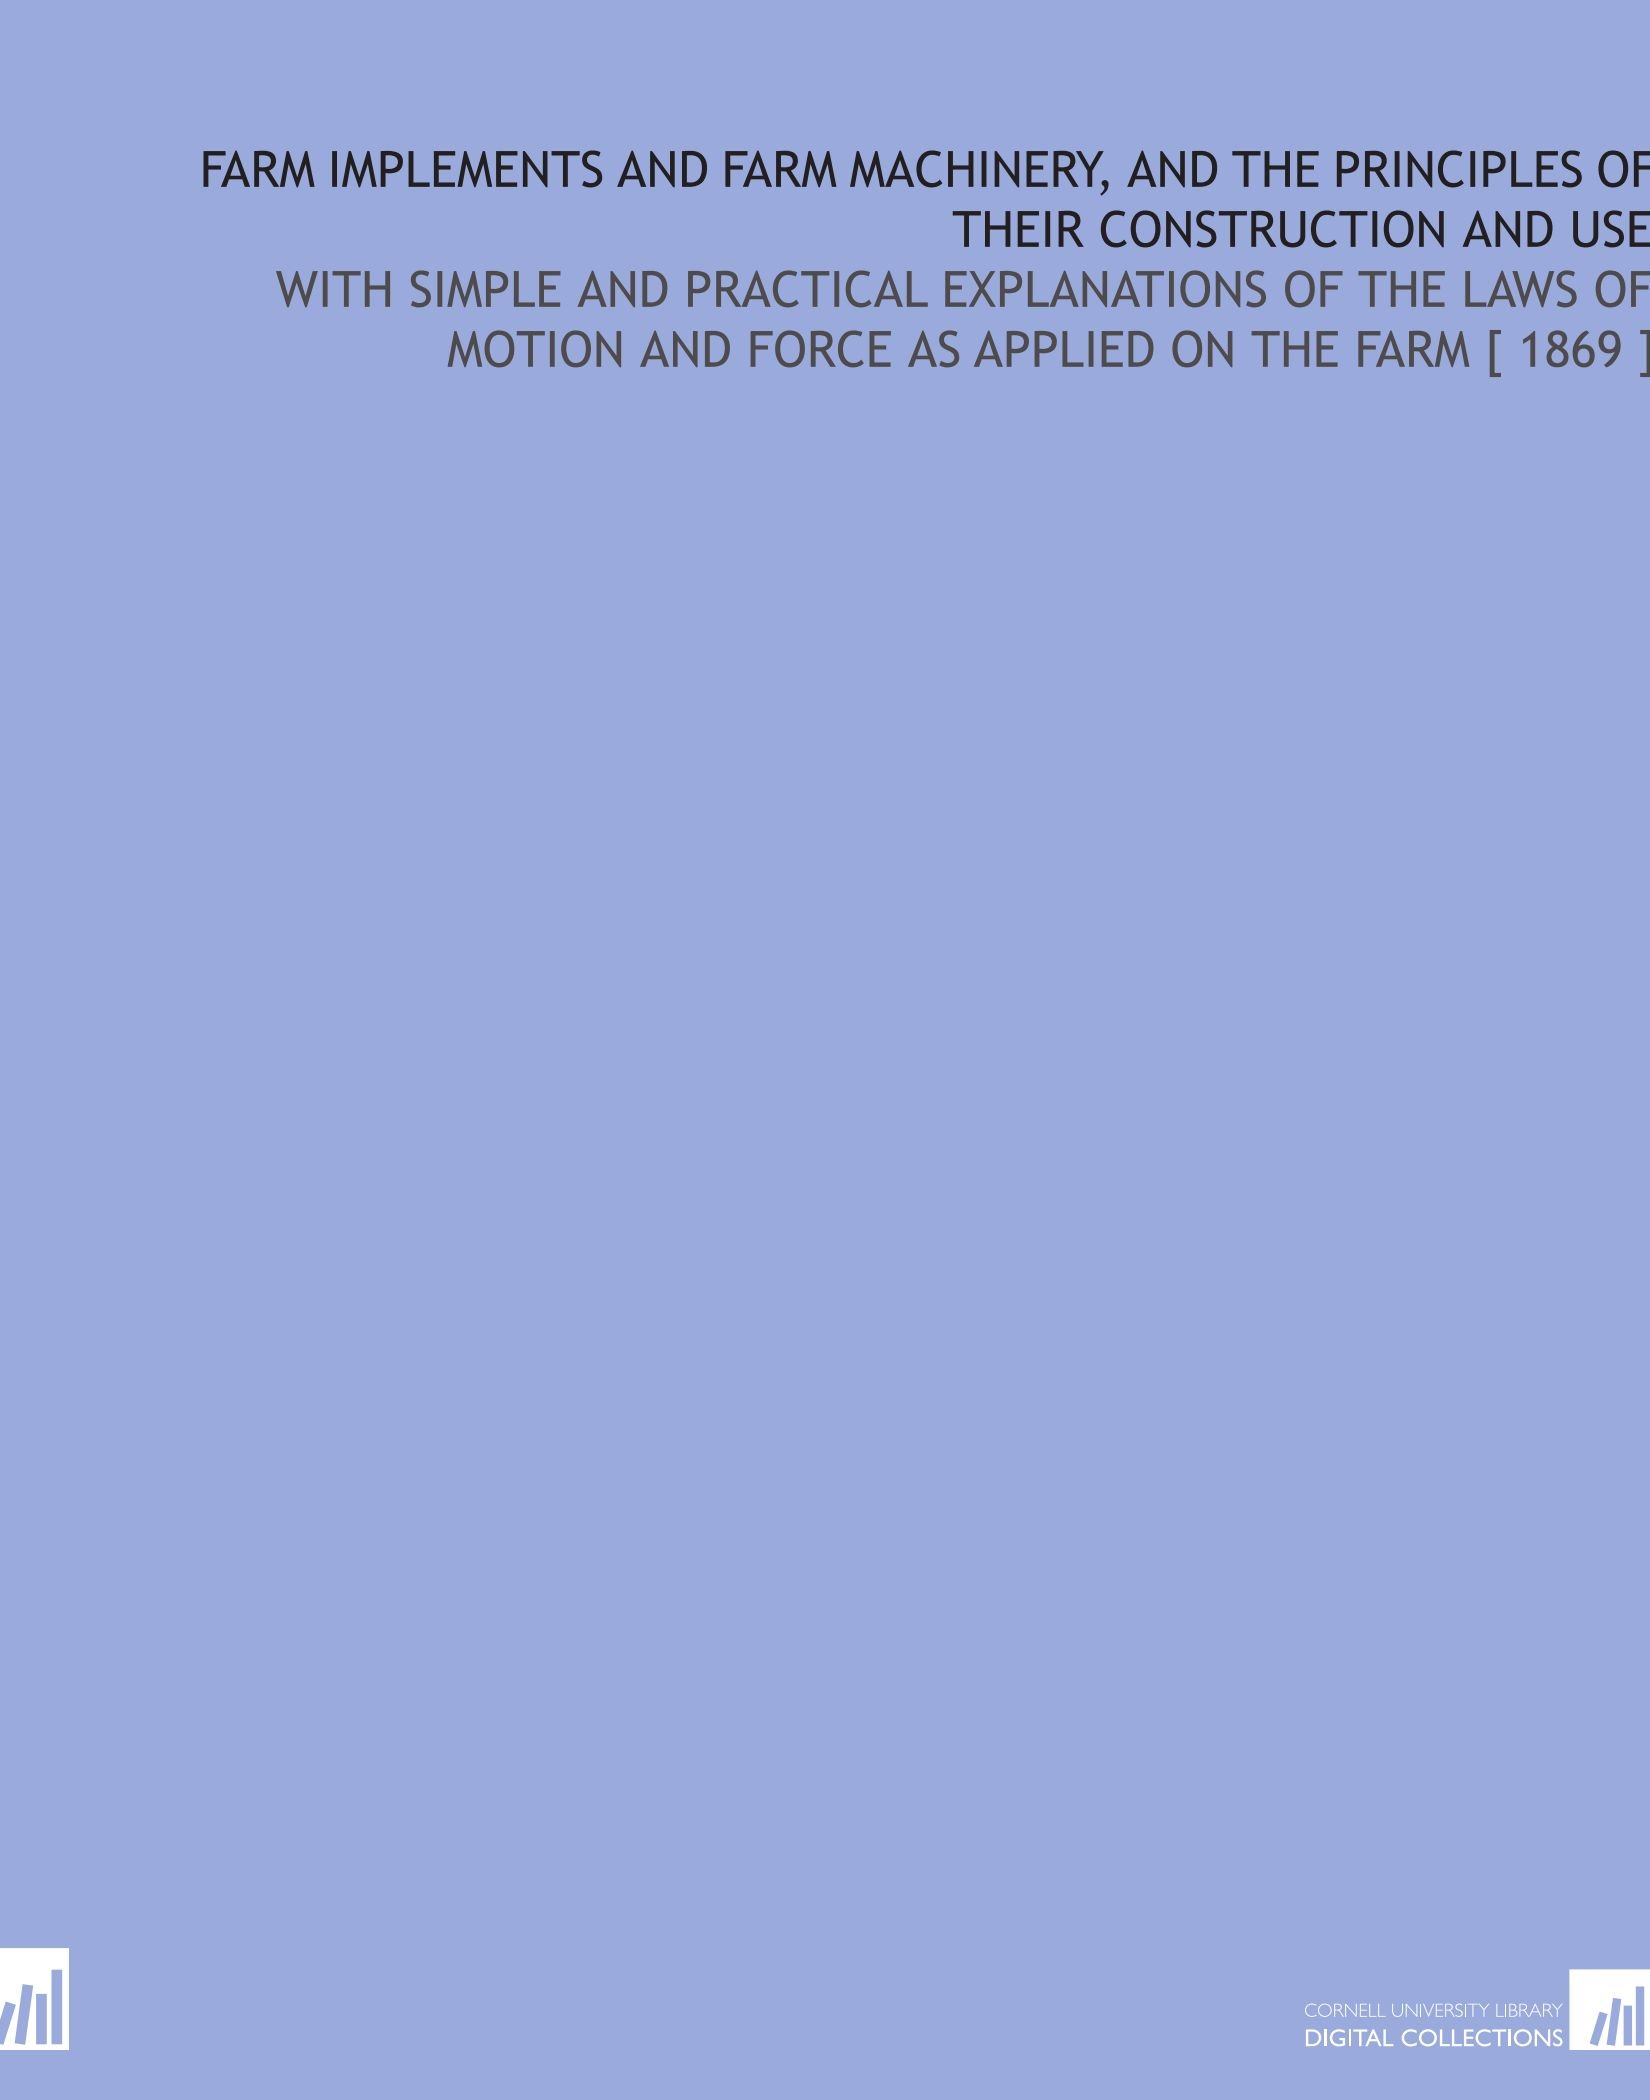 Read Online Farm Implements and Farm Machinery, and the Principles of Their Construction and Use: With Simple and Practical Explanations of the Laws of Motion and Force as Applied on the Farm [ 1869 ] pdf epub